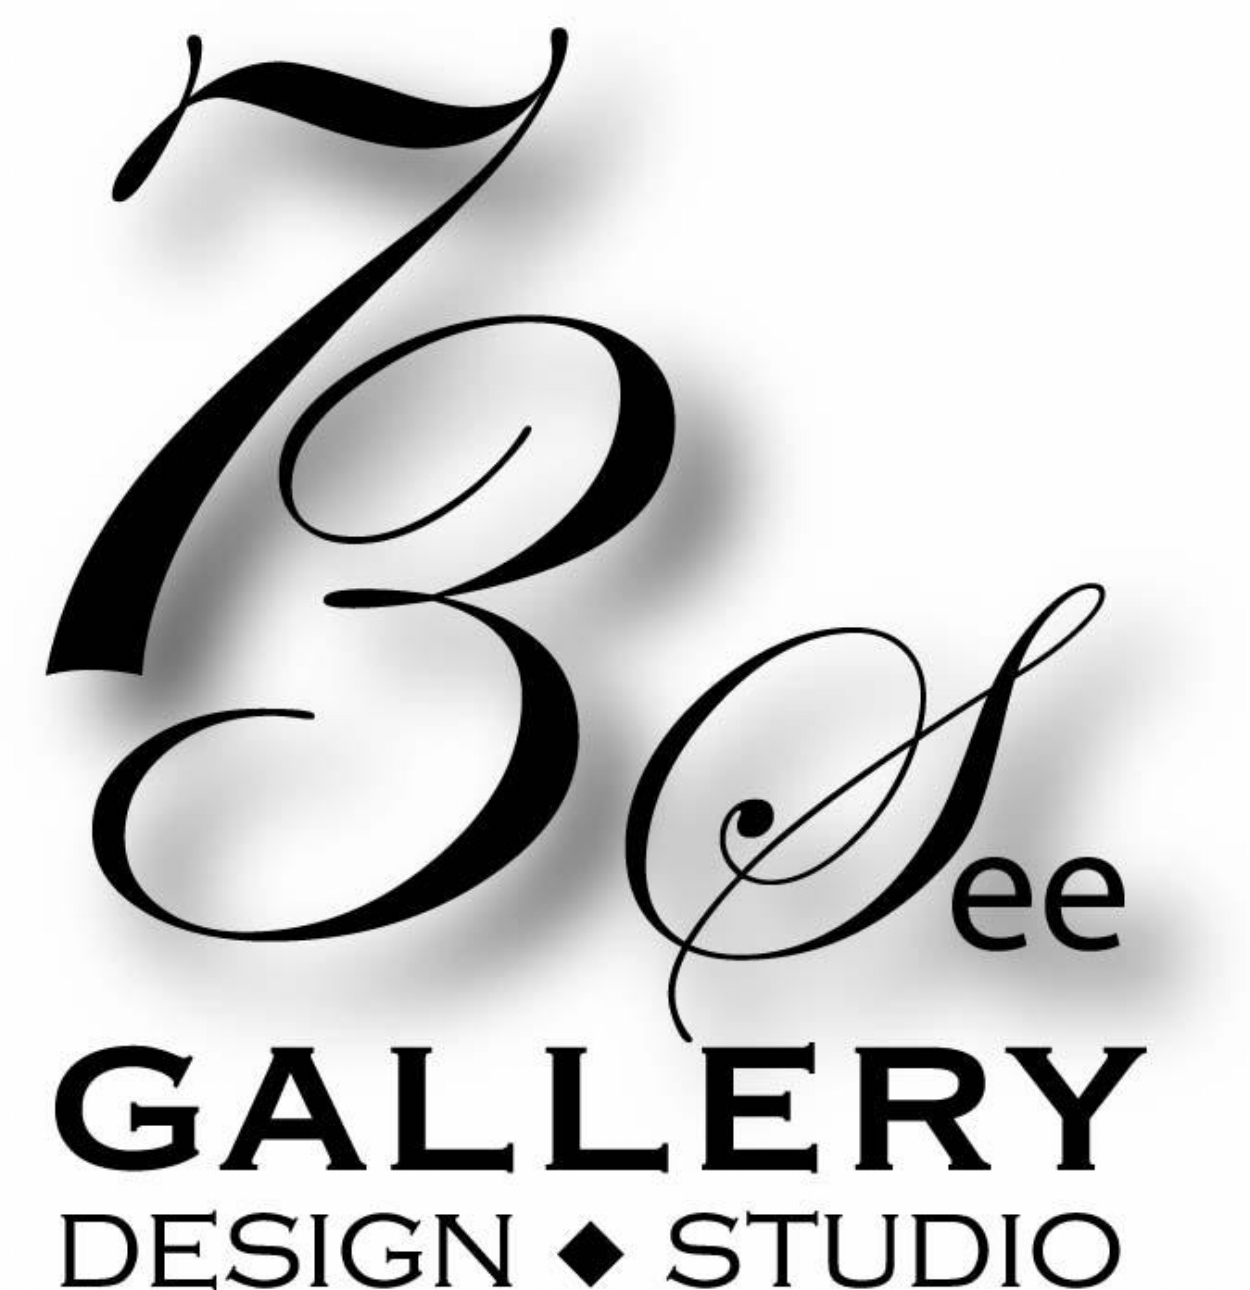 73 See Gallery & Design Studio